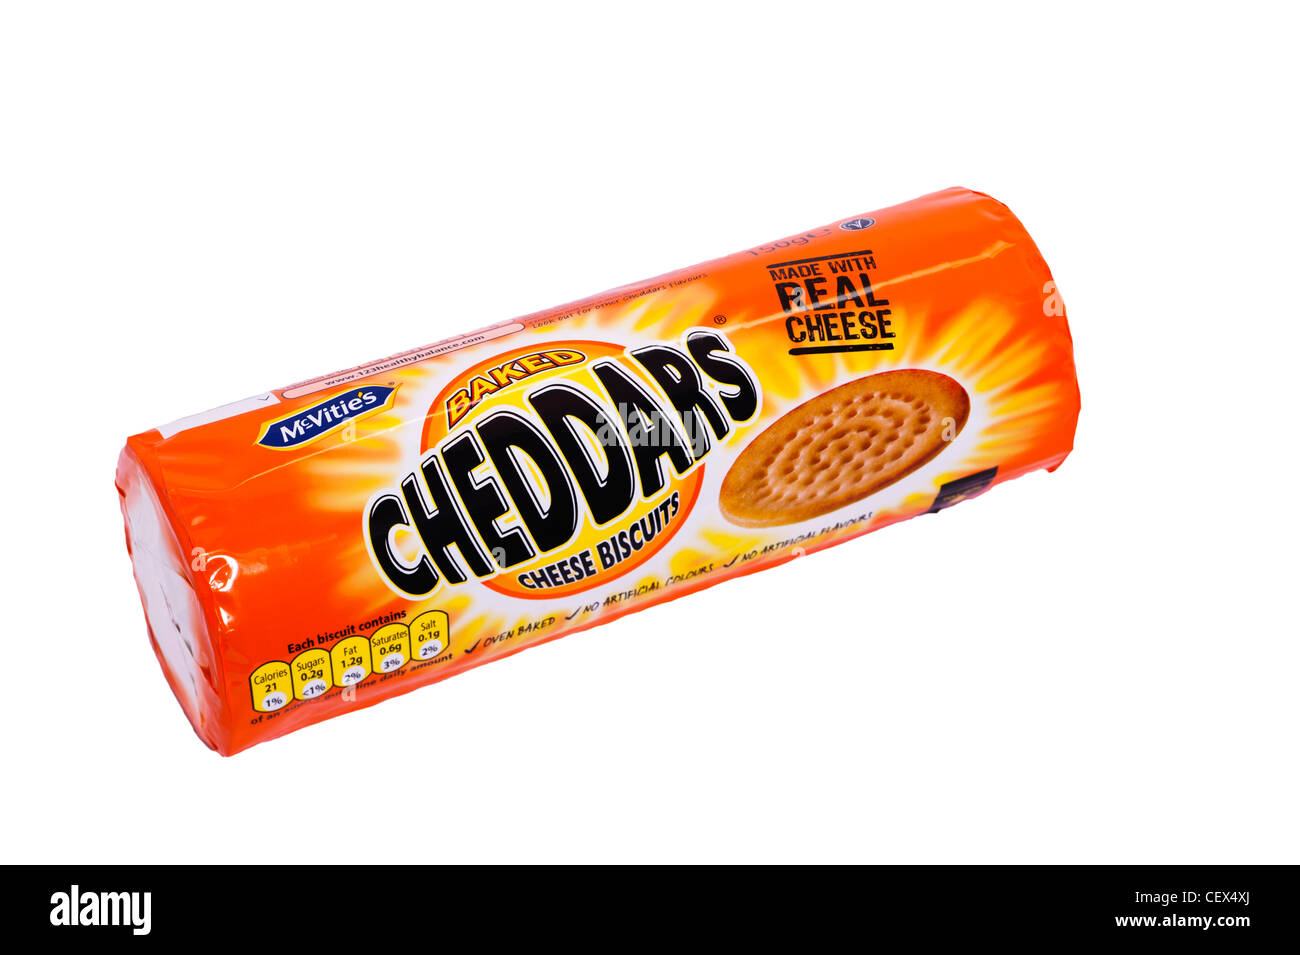 a packet of mcvitie s cheddars cheese biscuits on a white background